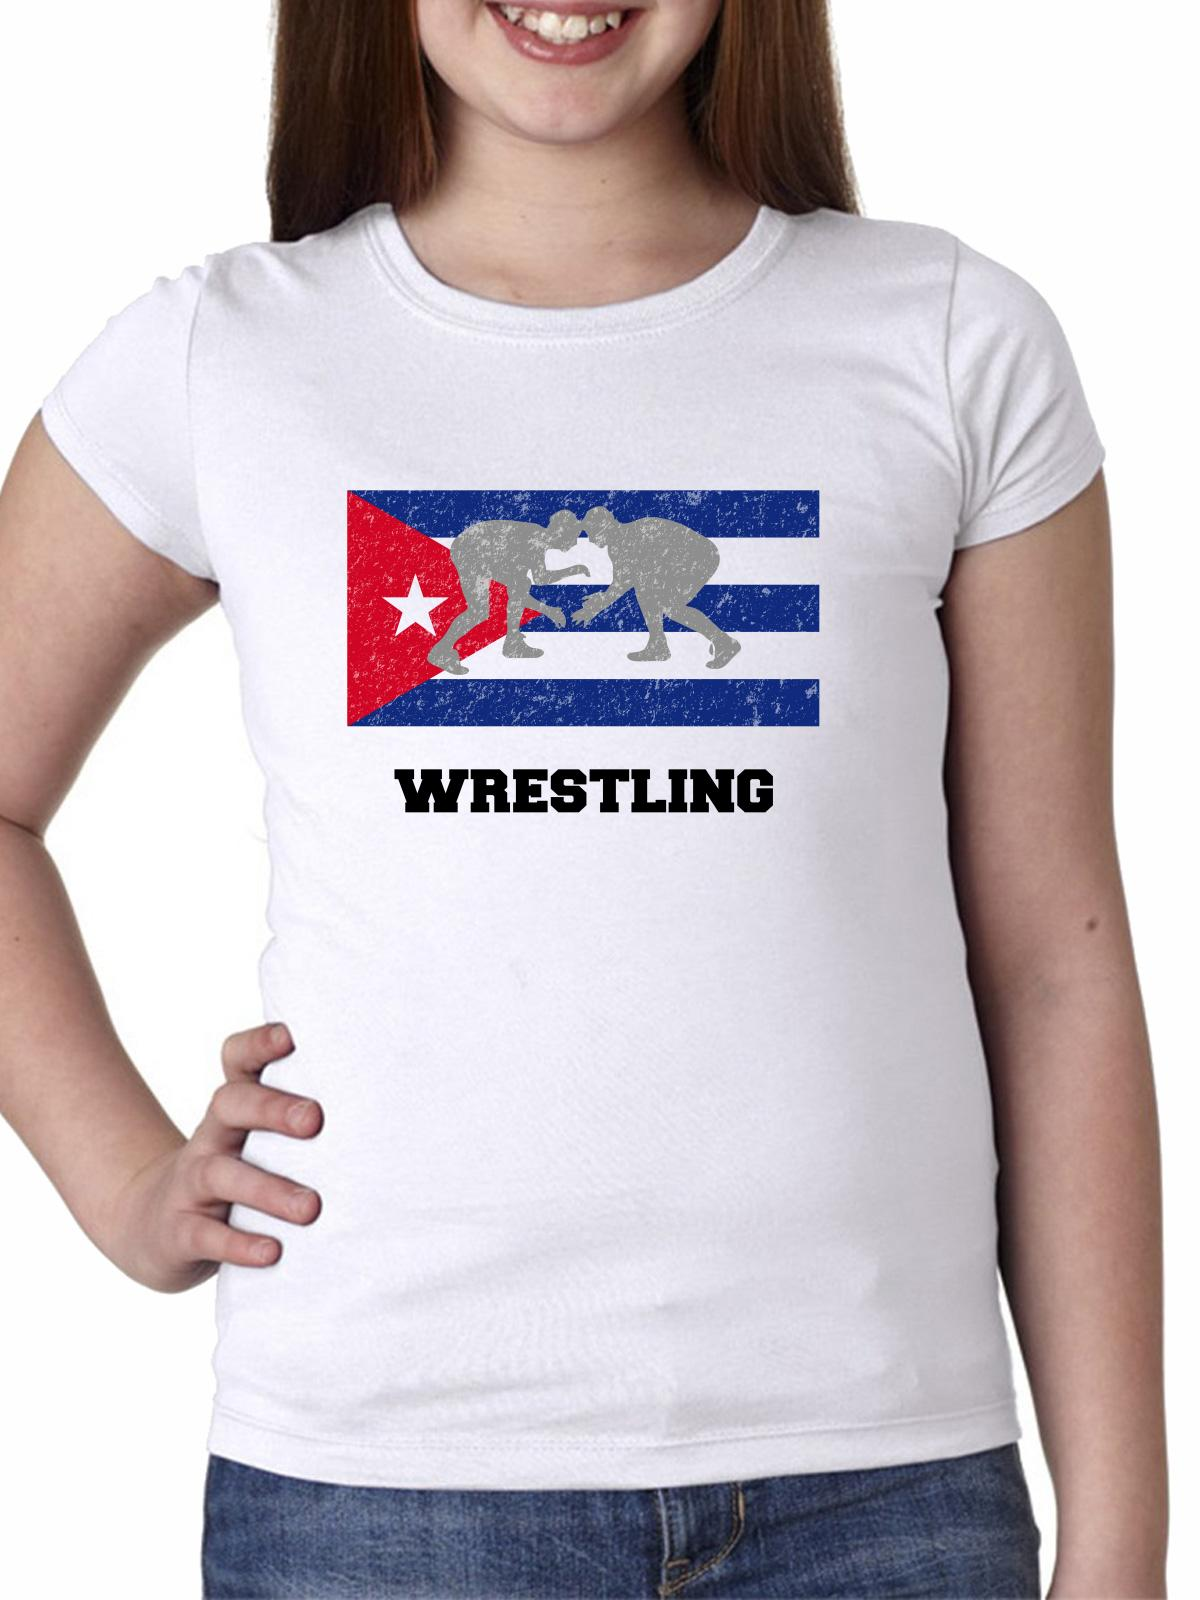 Cuba Olympic Wrestling Flag SilhouetteYou Girl's Cotton Youth T-Shirt by Hollywood Thread